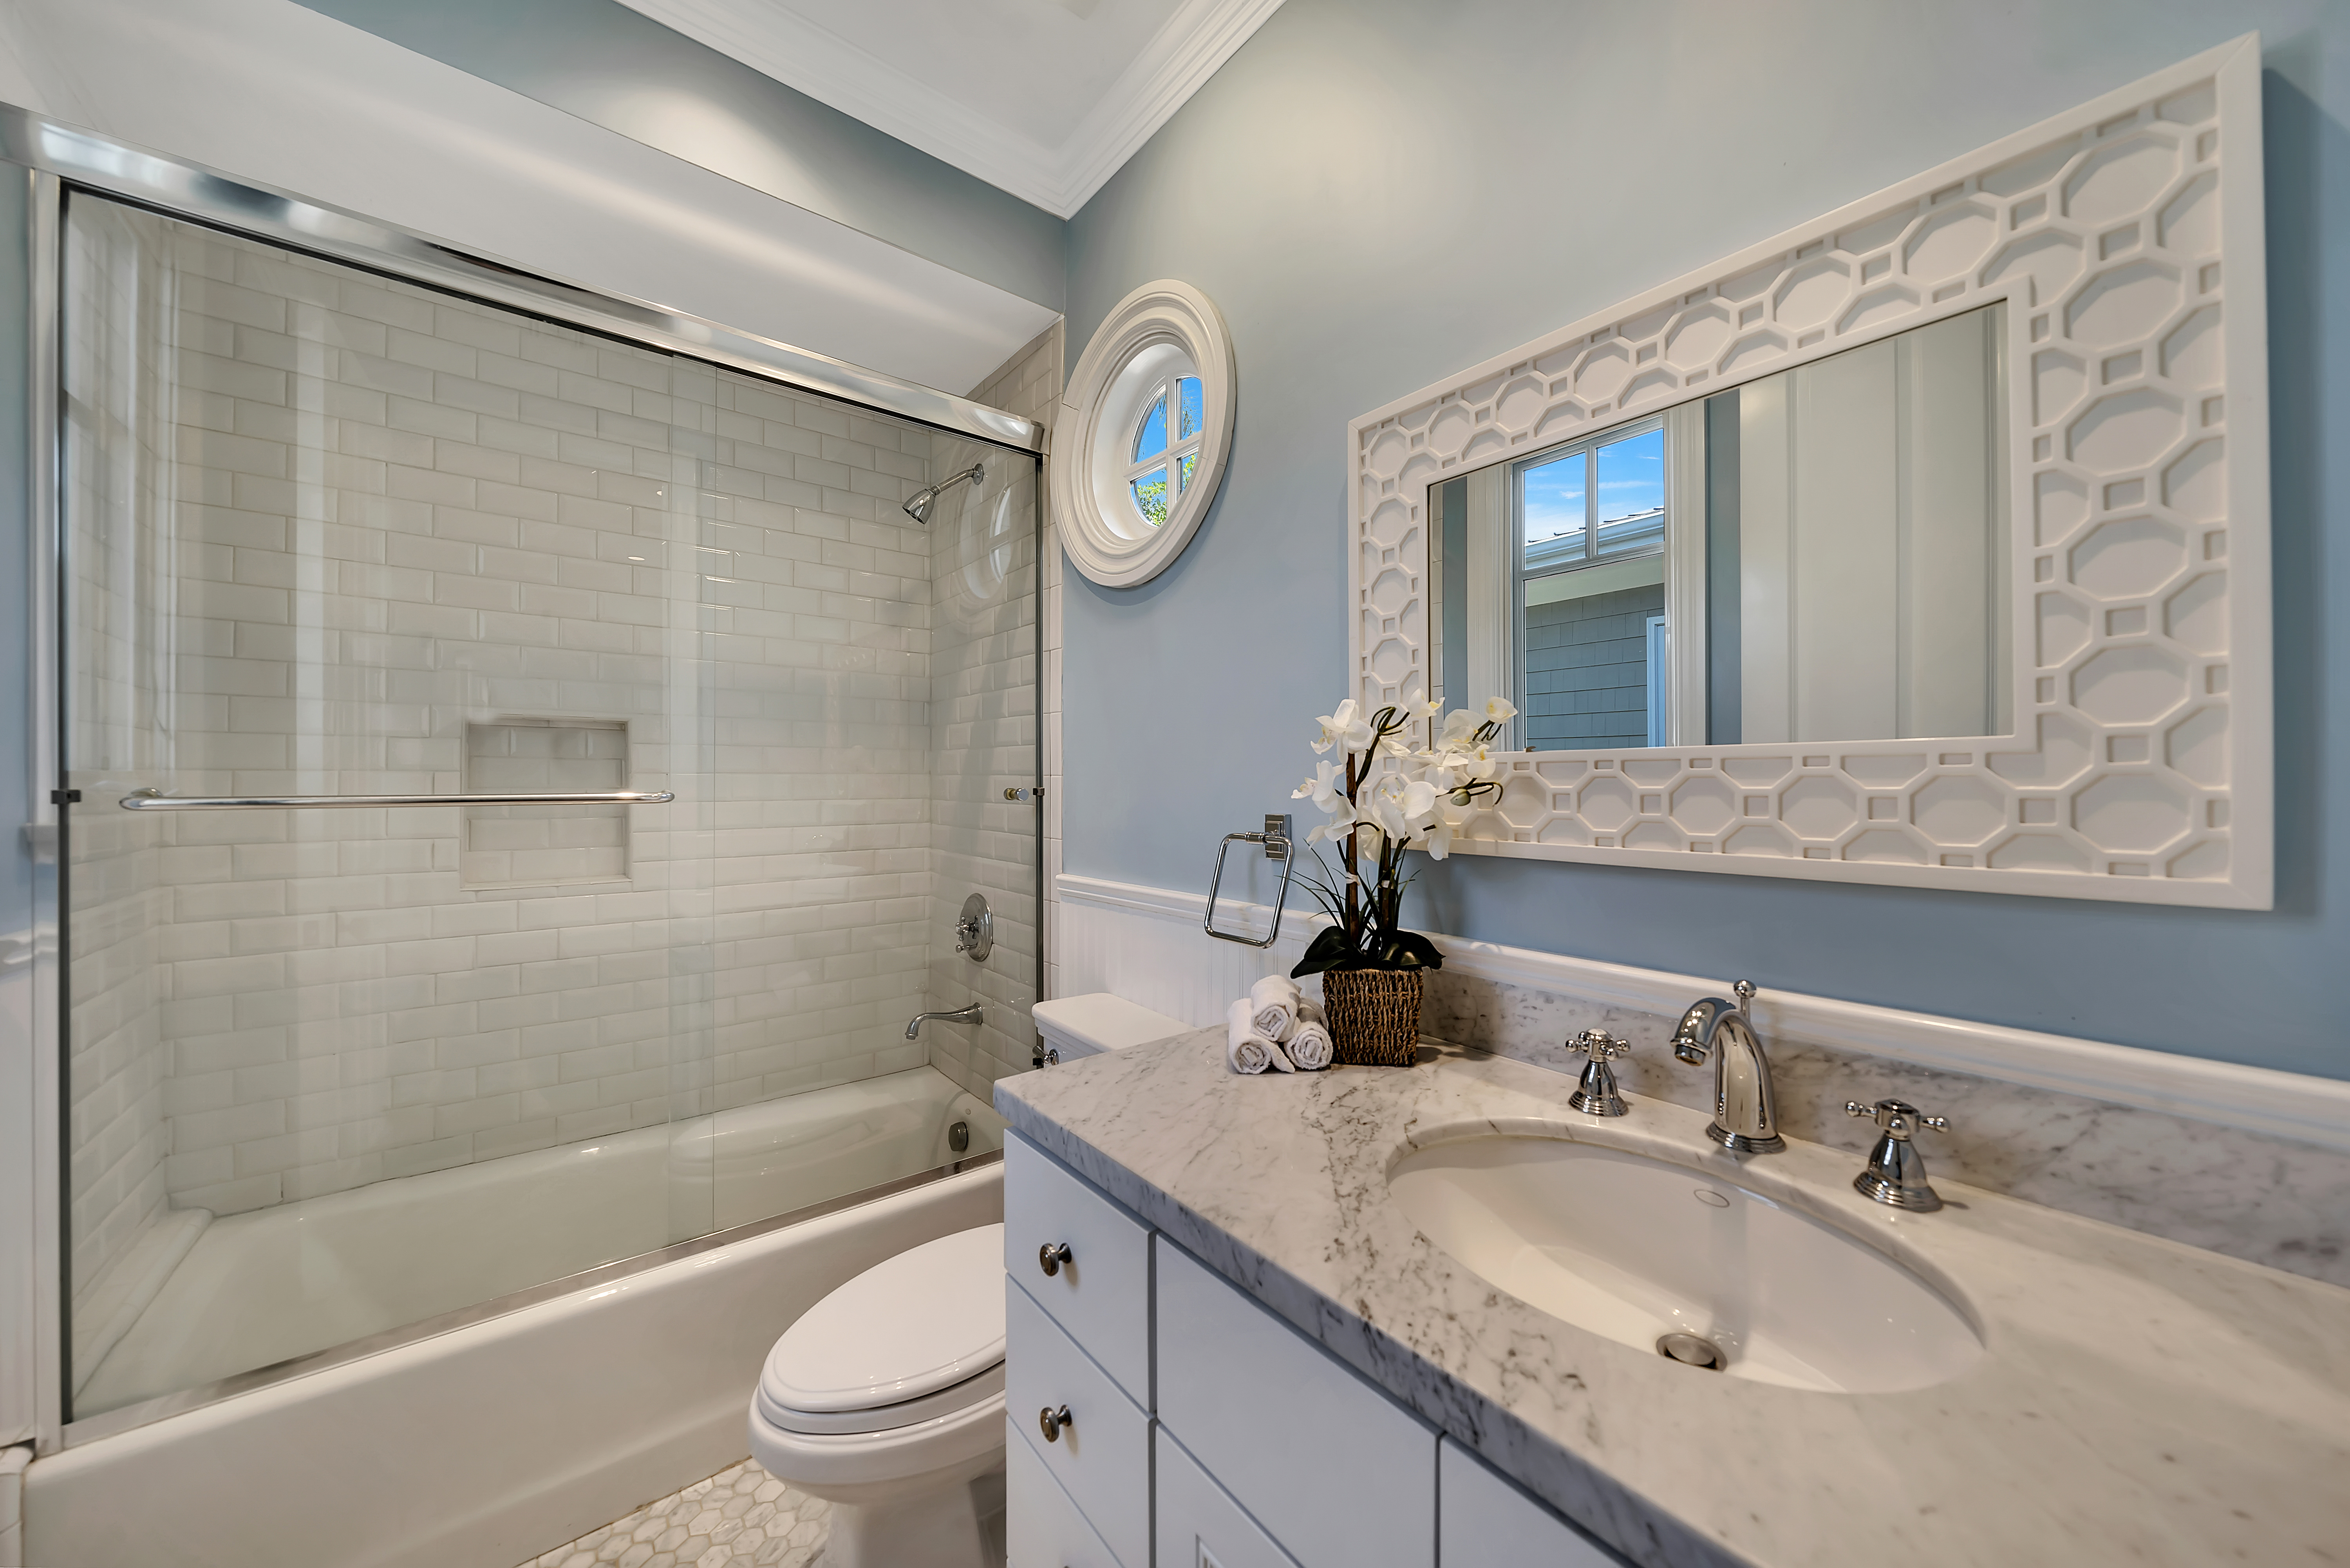 white subway tile in a bathroom